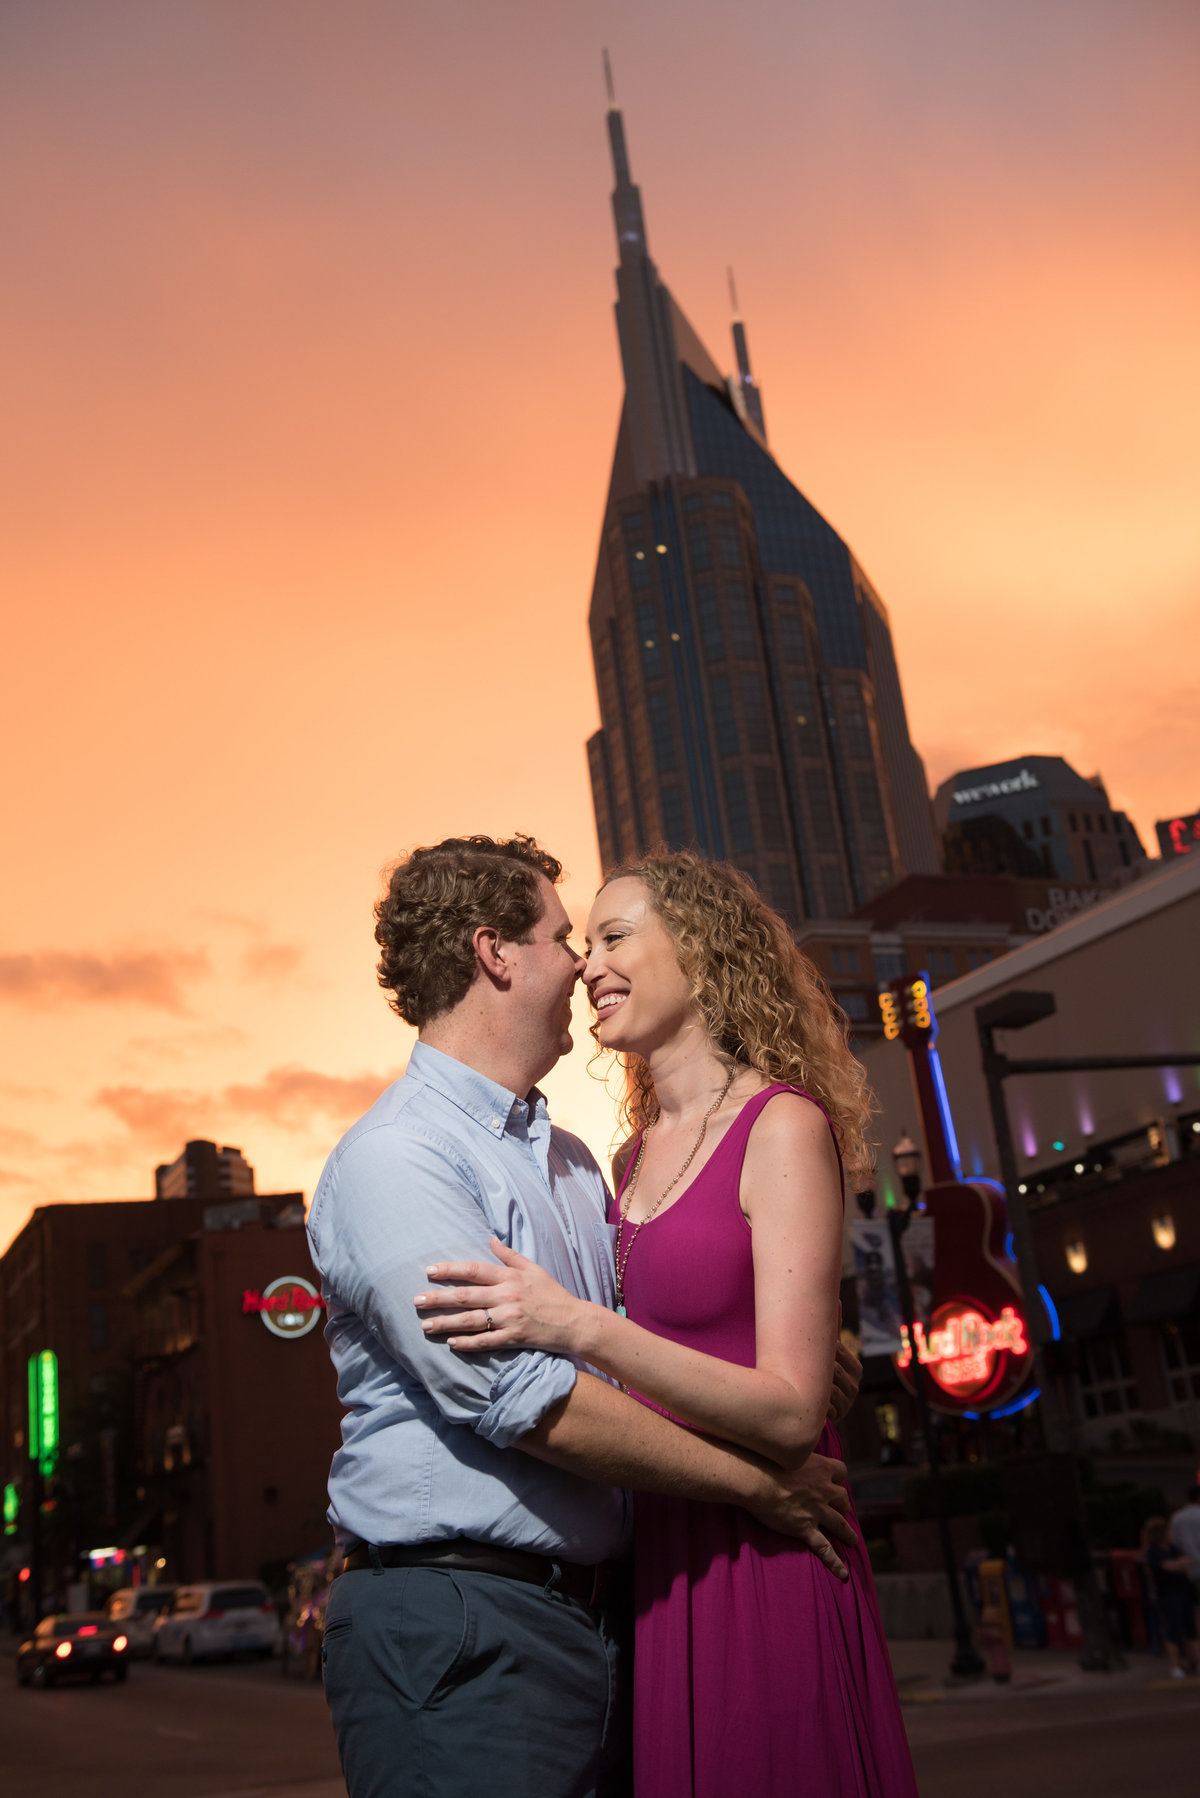 Highgravityphotography_Nashville_Engagement_Photos-92